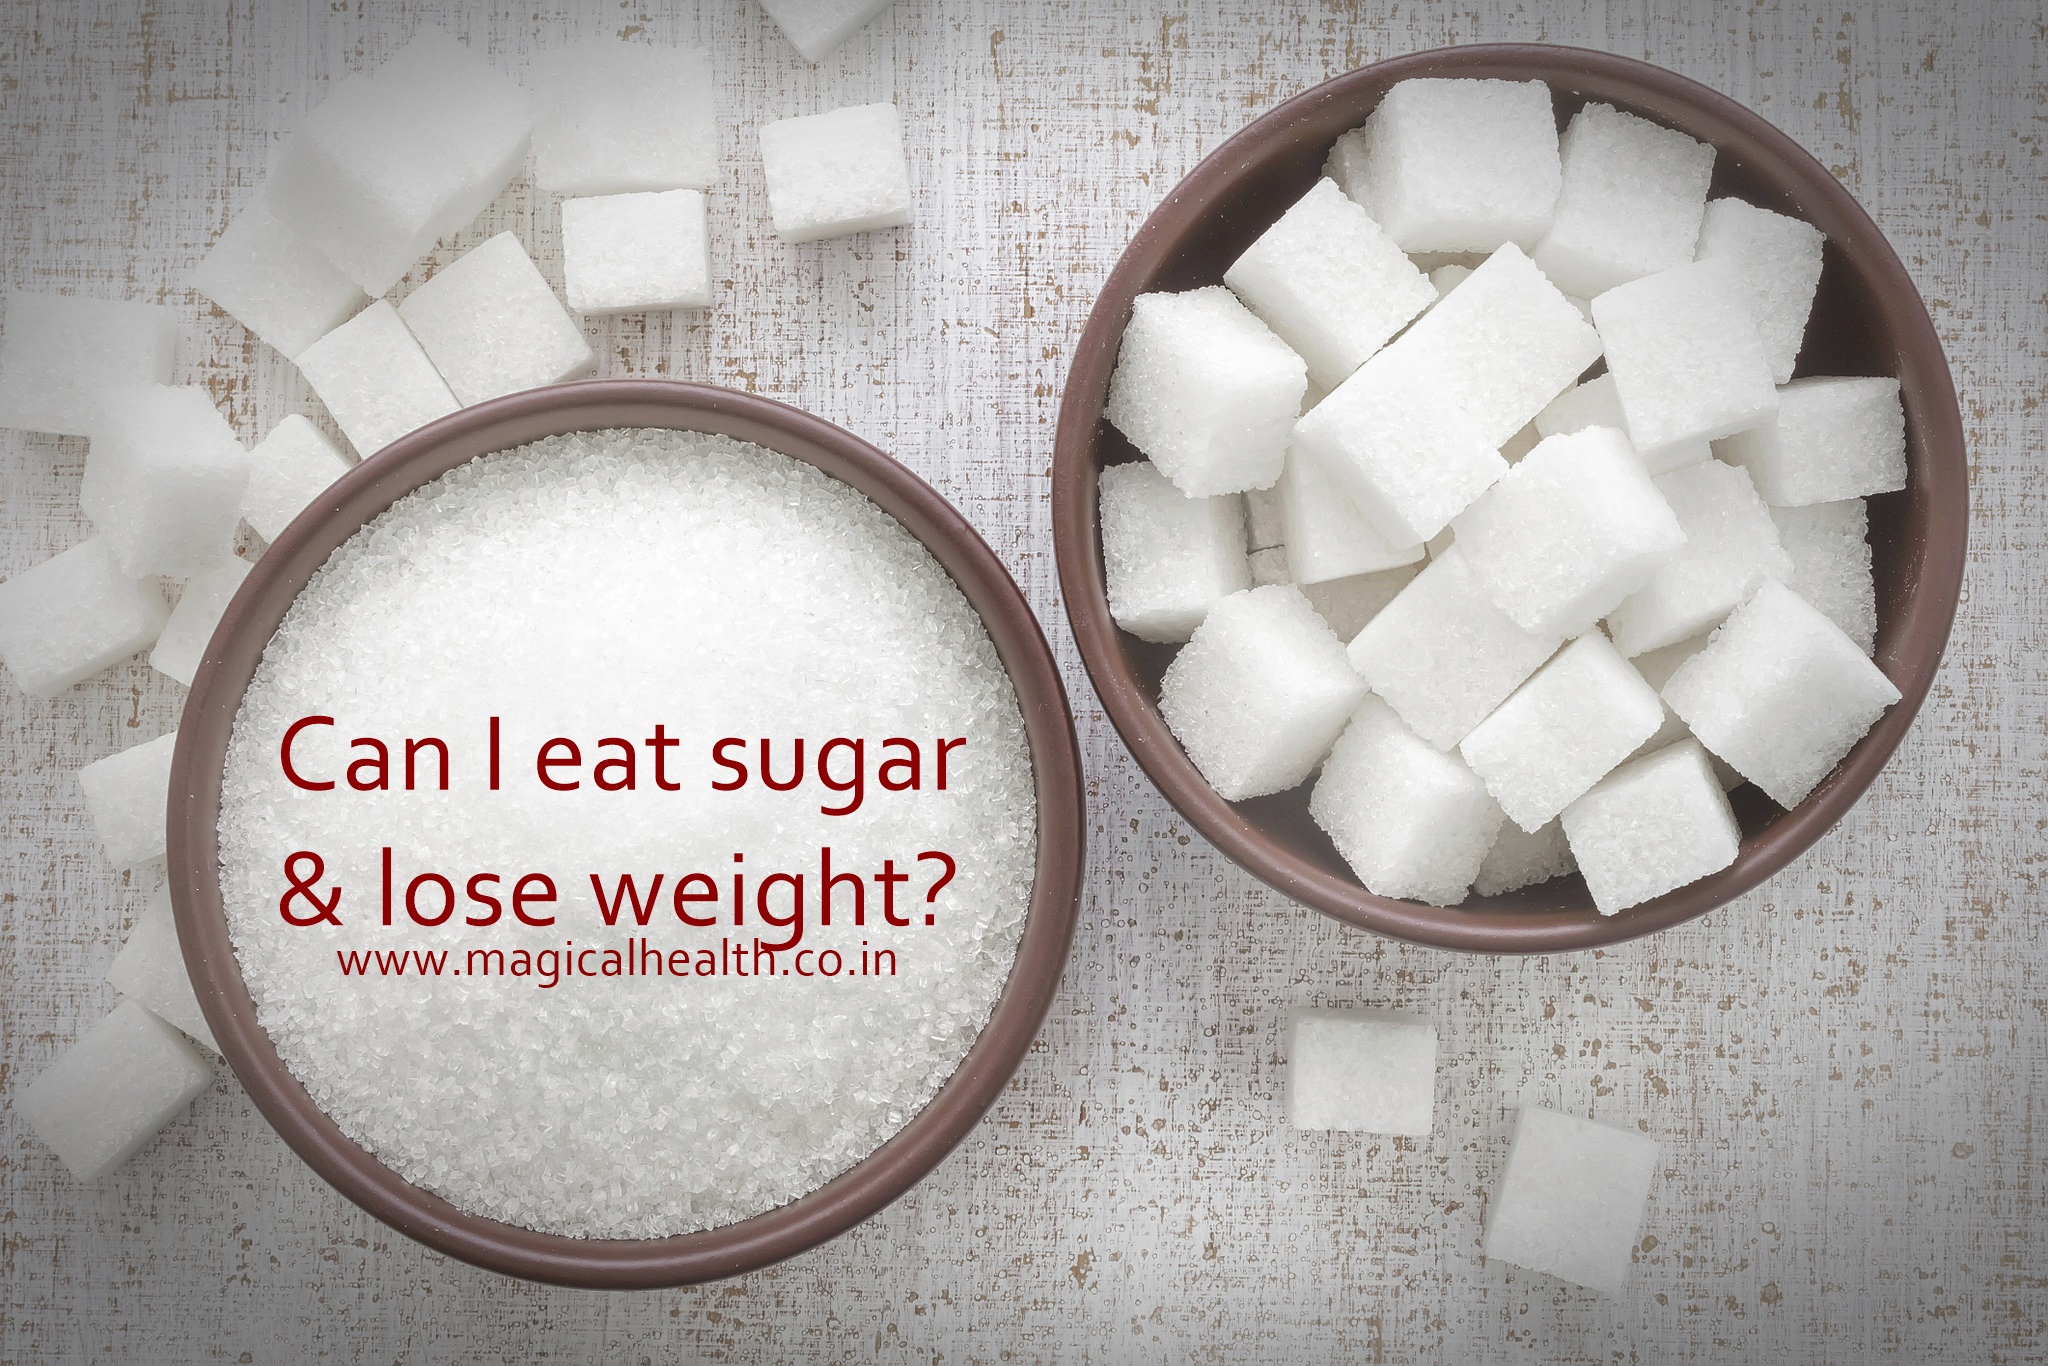 Eat Sugar and lose weight